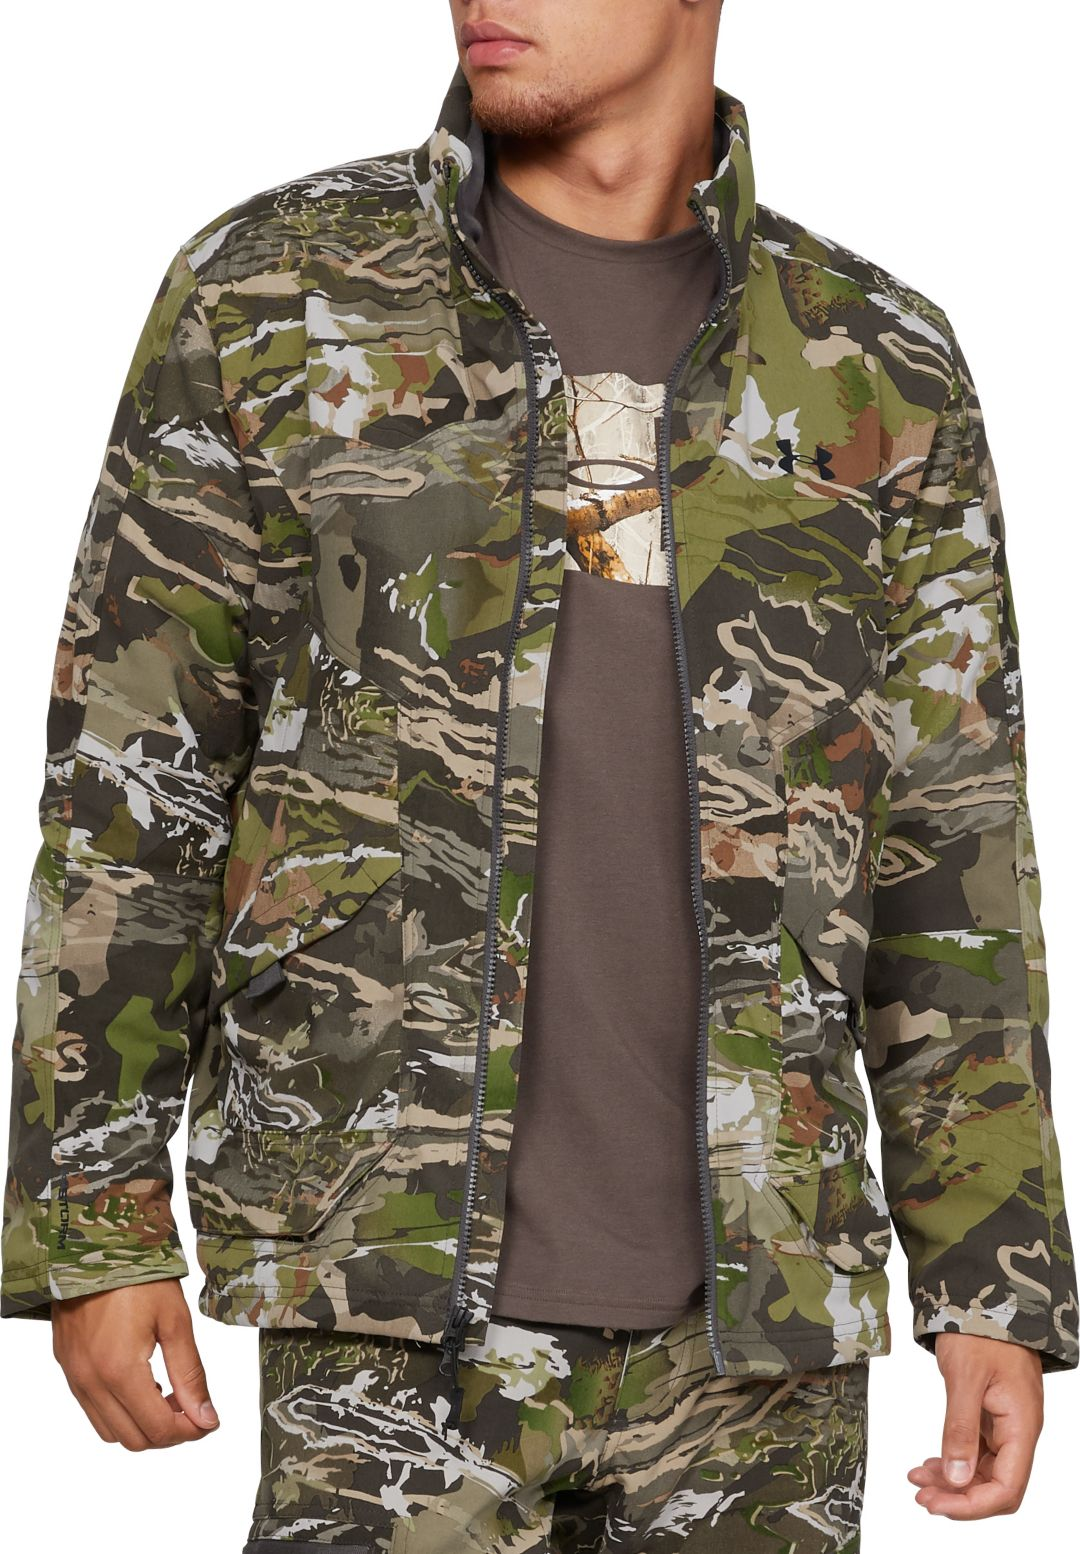 600bba0f4e6b3 Under Armour Men's Grit Hunting Jacket | DICK'S Sporting Goods